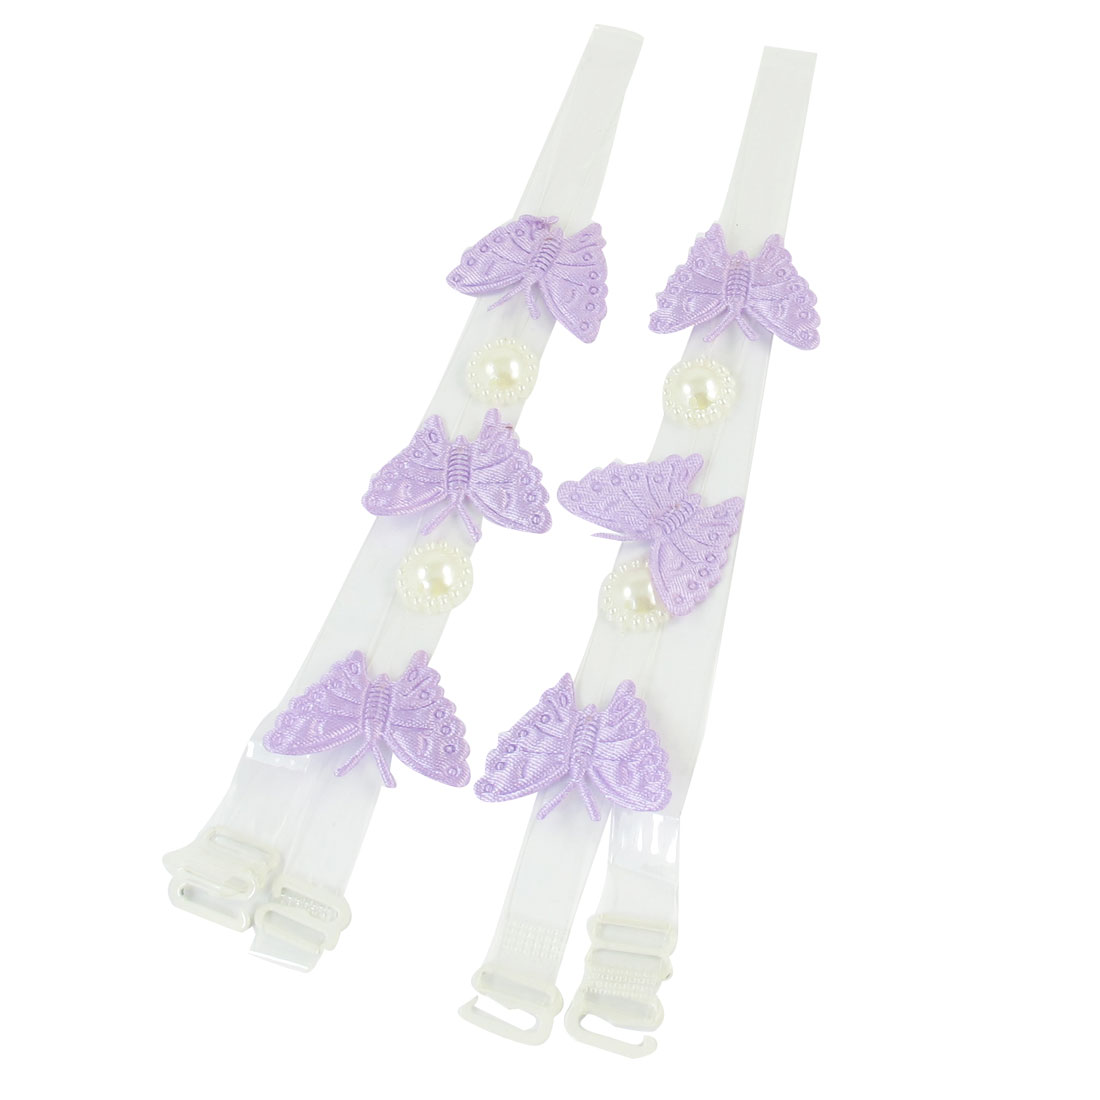 Lady Faux Pearl Decor Purple Butterfly Pattern Clear Bra Shoulder Straps Pair